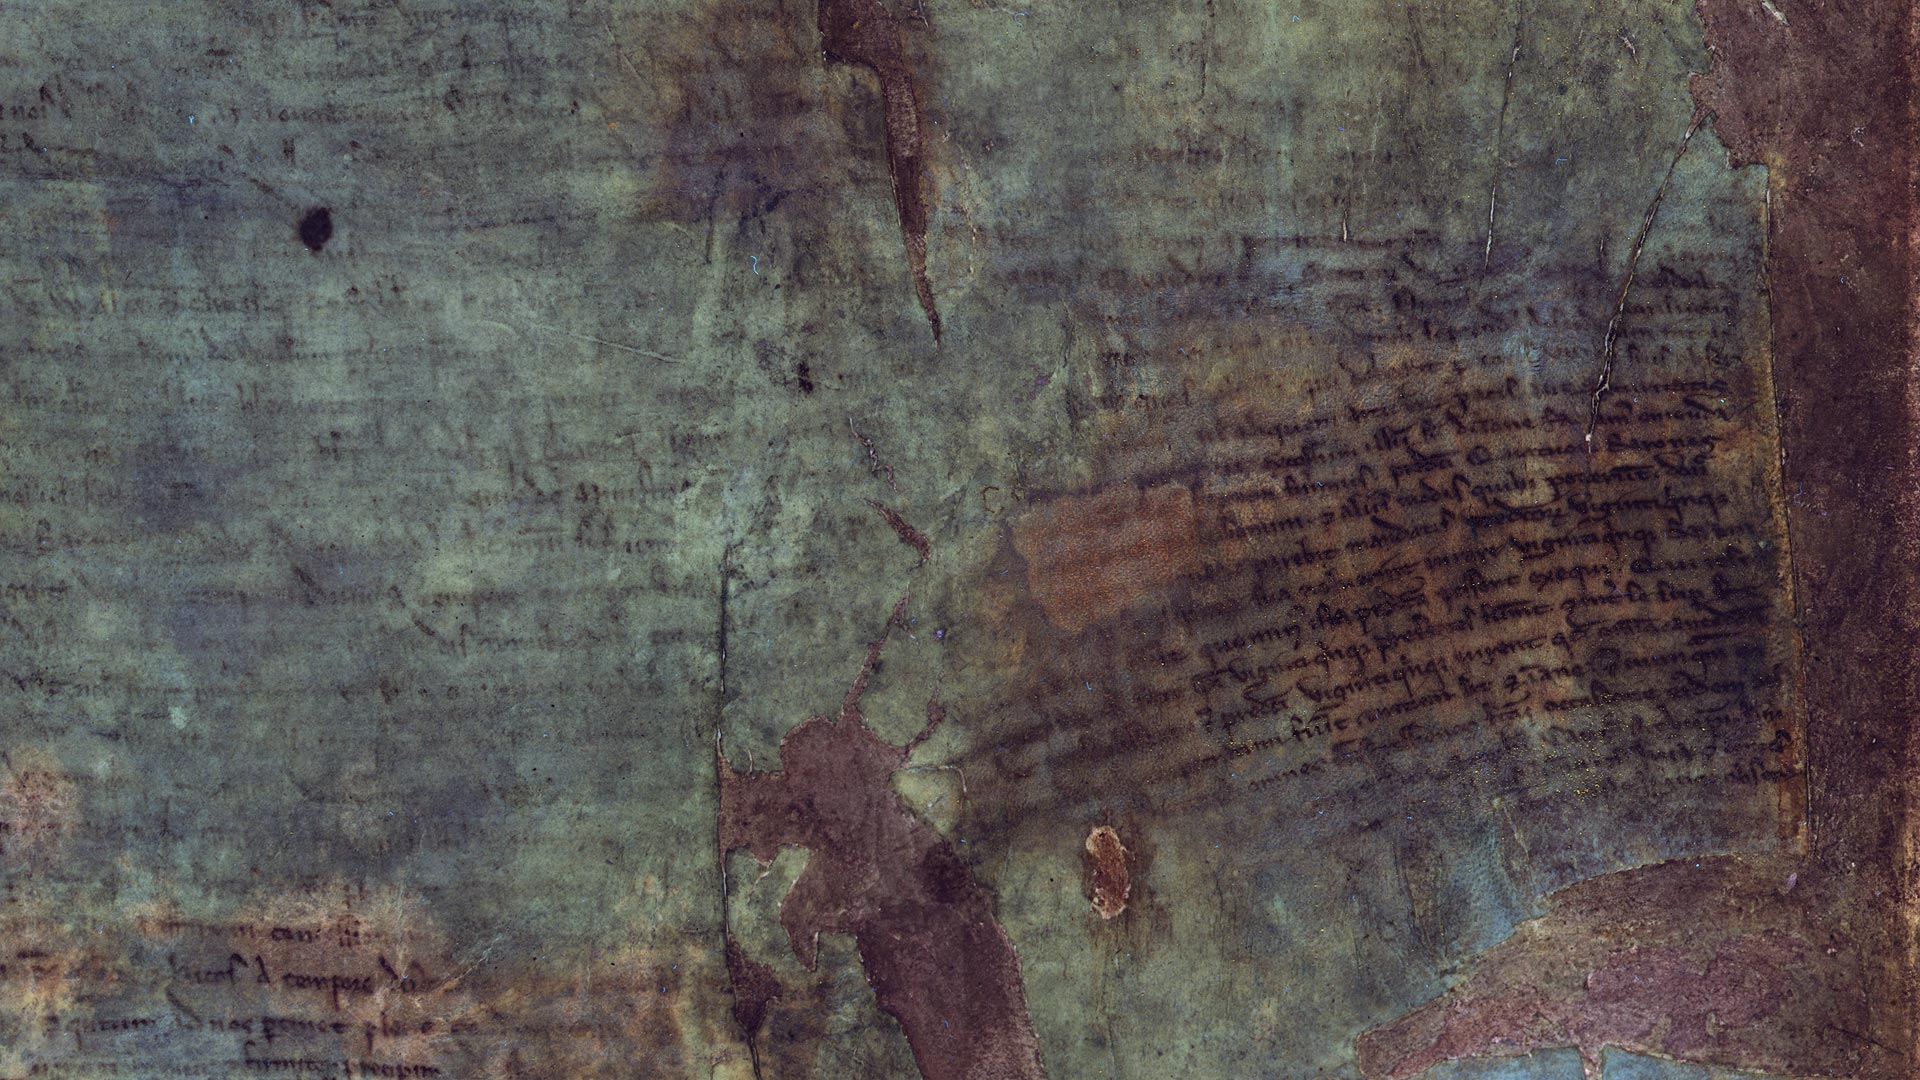 Multispectral imaging on the burnt Magna Carta